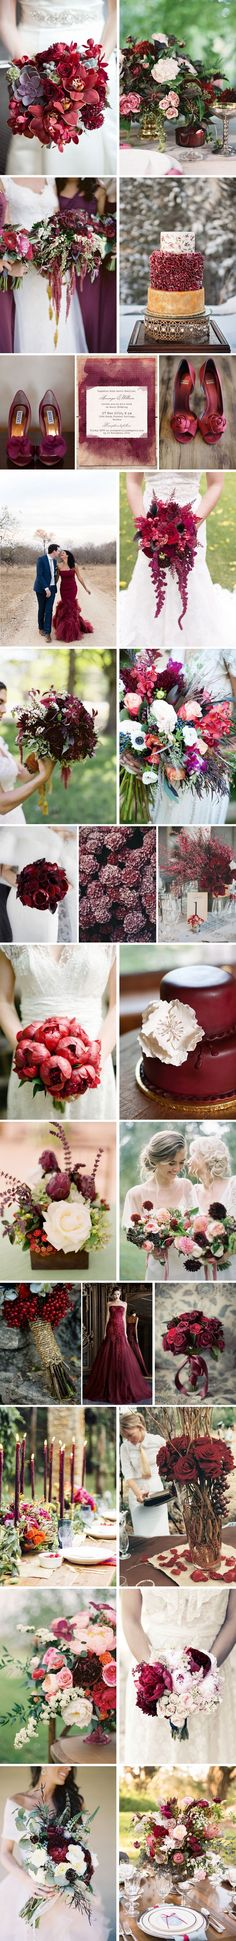 pantone color of 2015 marsala wedding color ideas - Deer Pearl Flowers